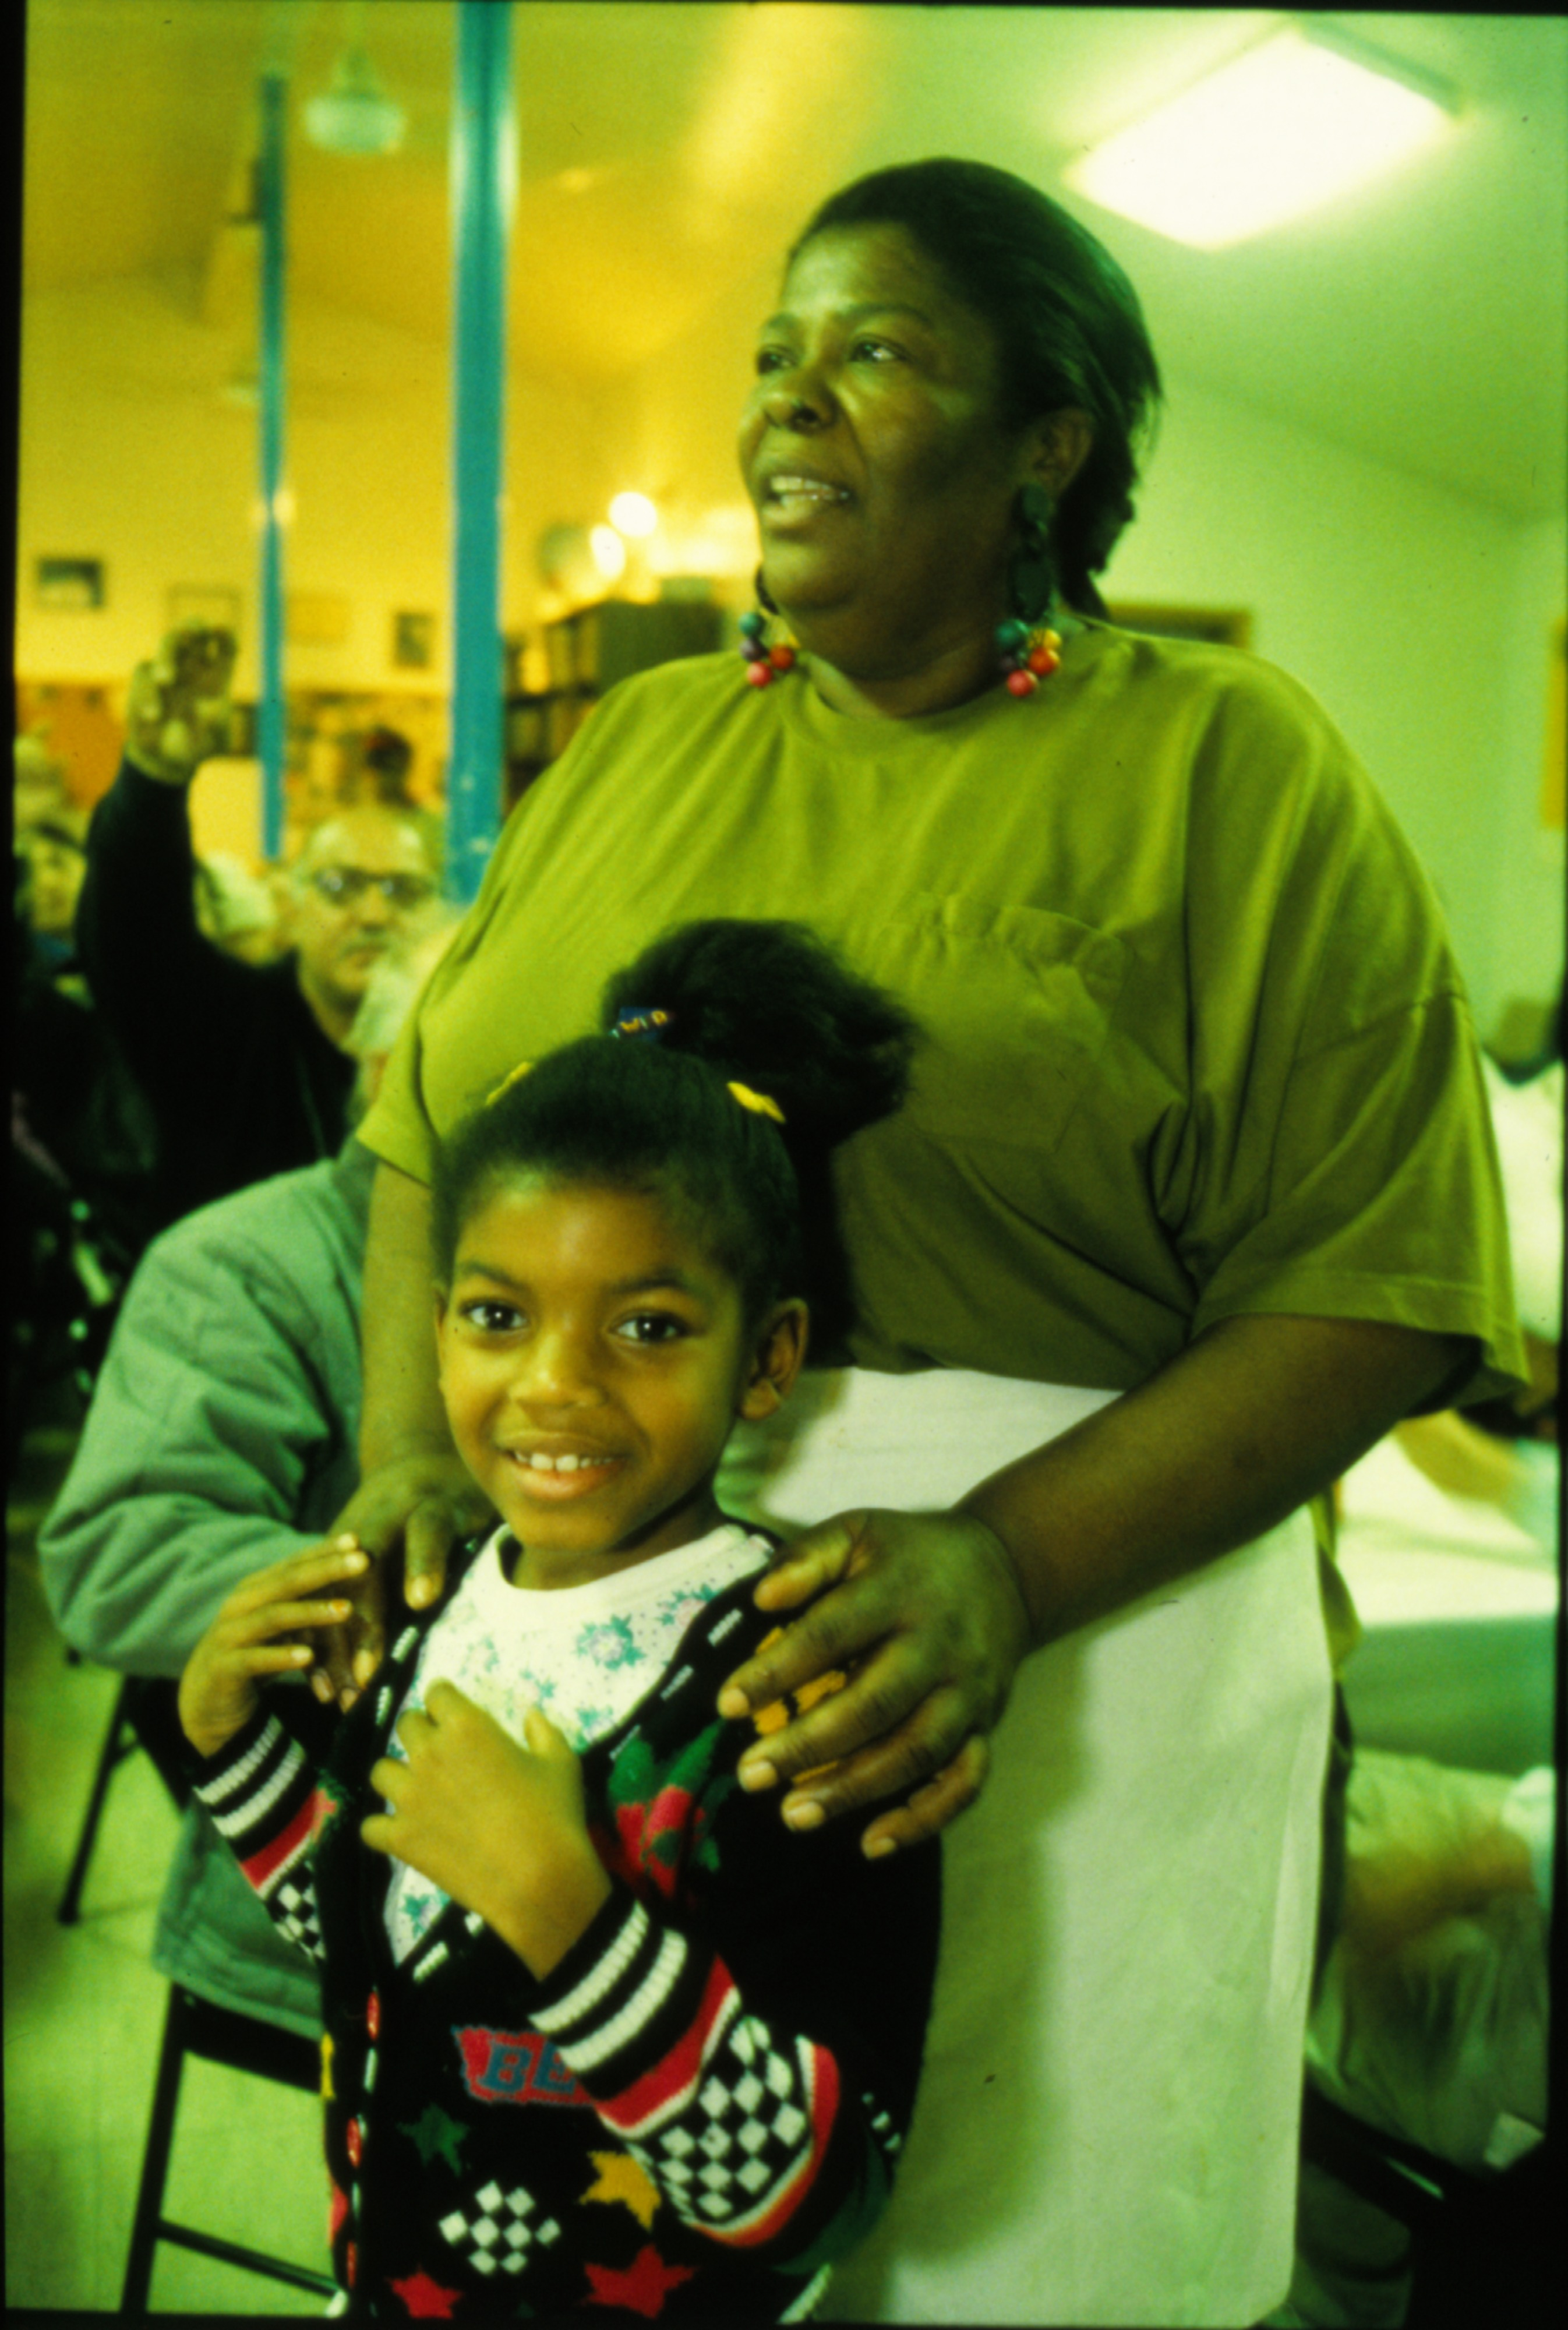 Thanksgiving Guest At Peace Neighborhood Center, November 1991 image